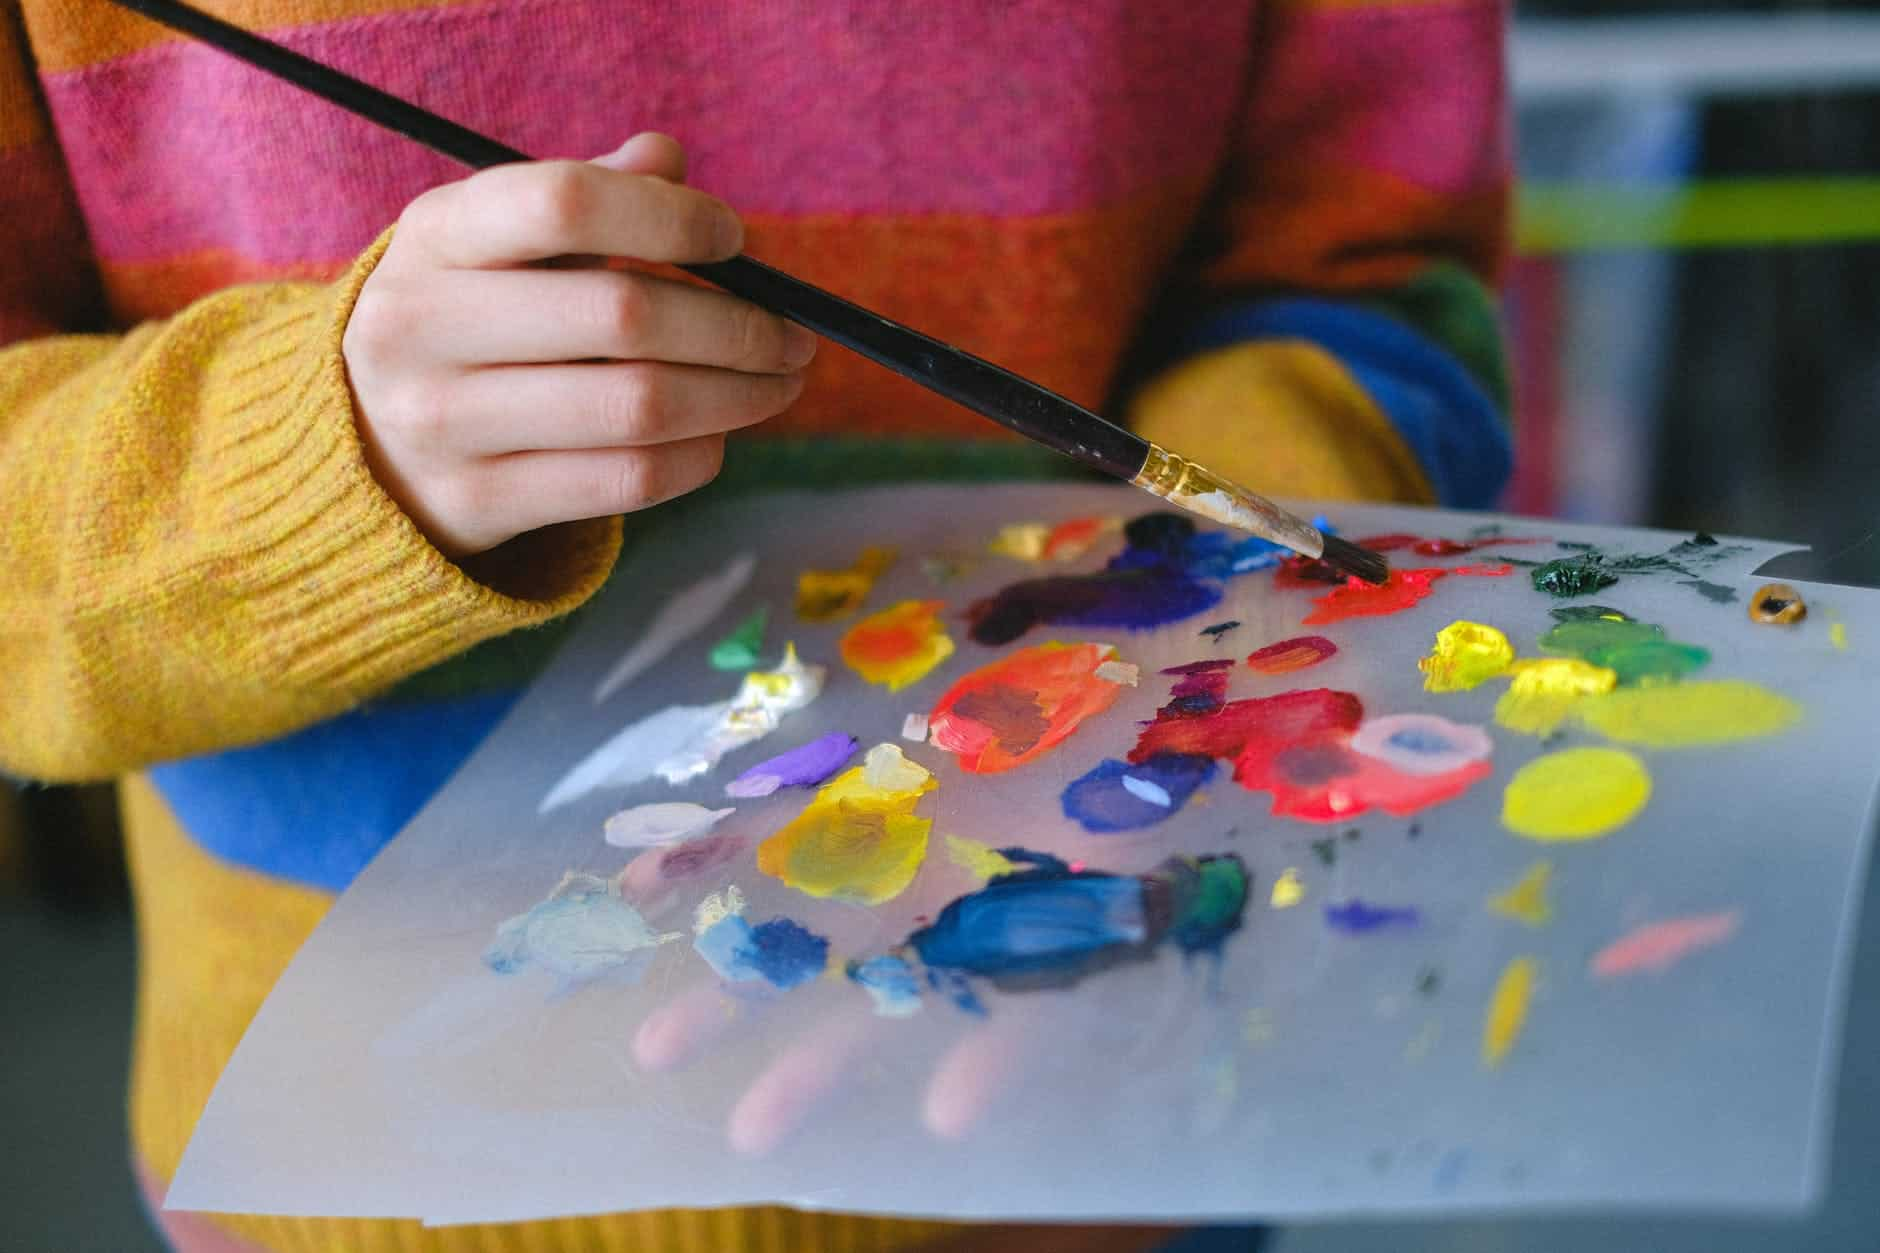 unrecognizable painter mixing colors on paper - mindfulness matters